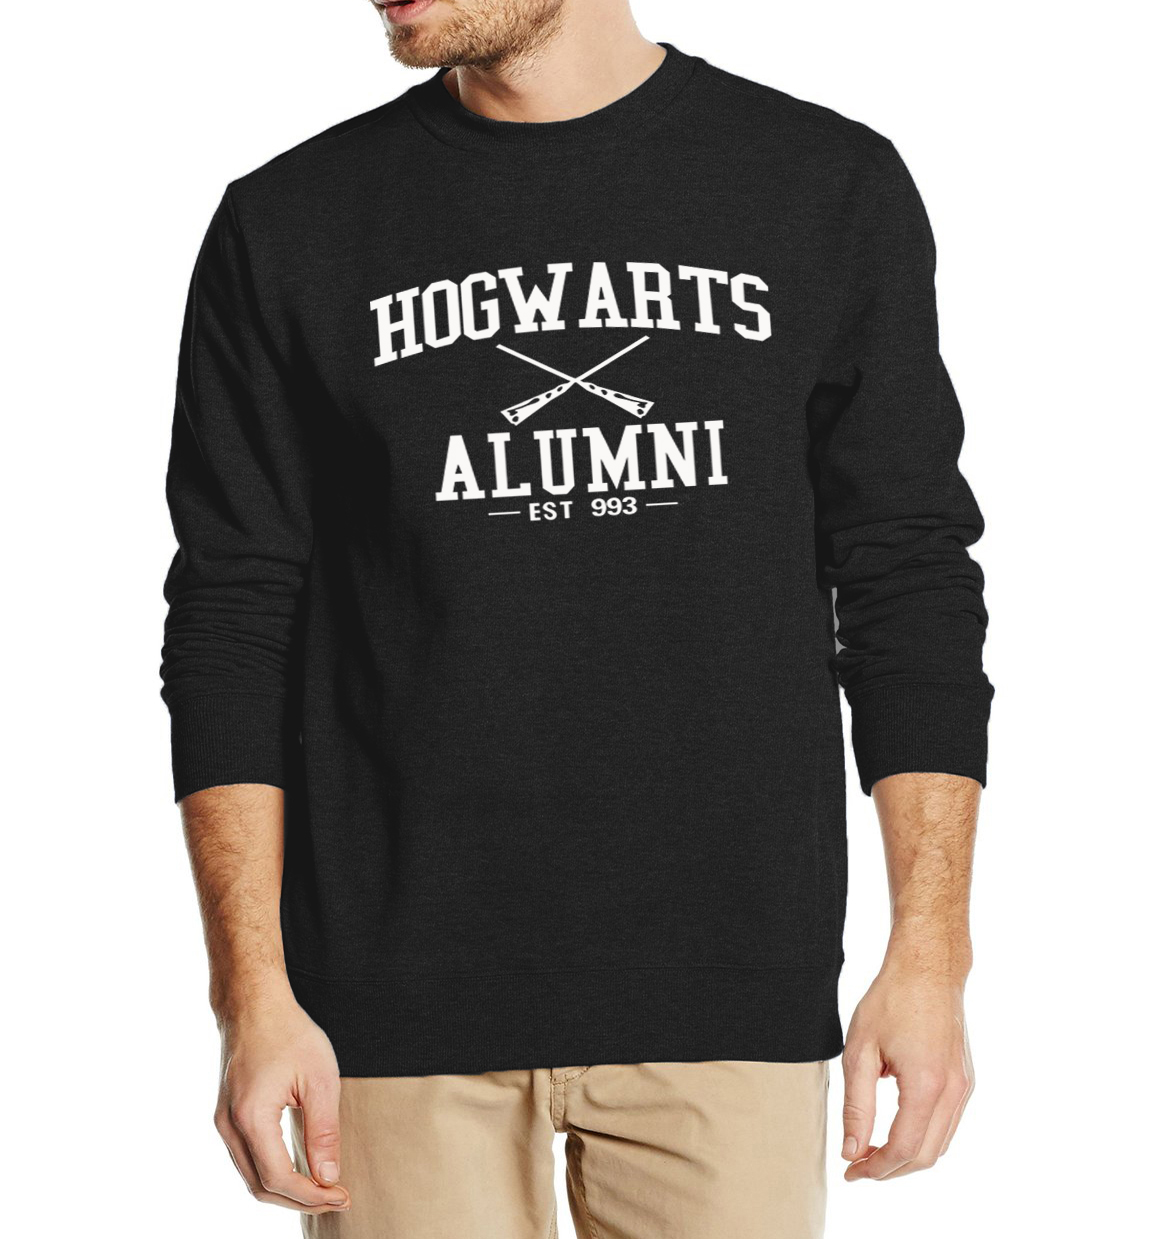 Hogwarts Alumni Inspired Magic Men Hoodies 2019 spring winter man sweatshirt hip hop style hooded brand clothing movie fans